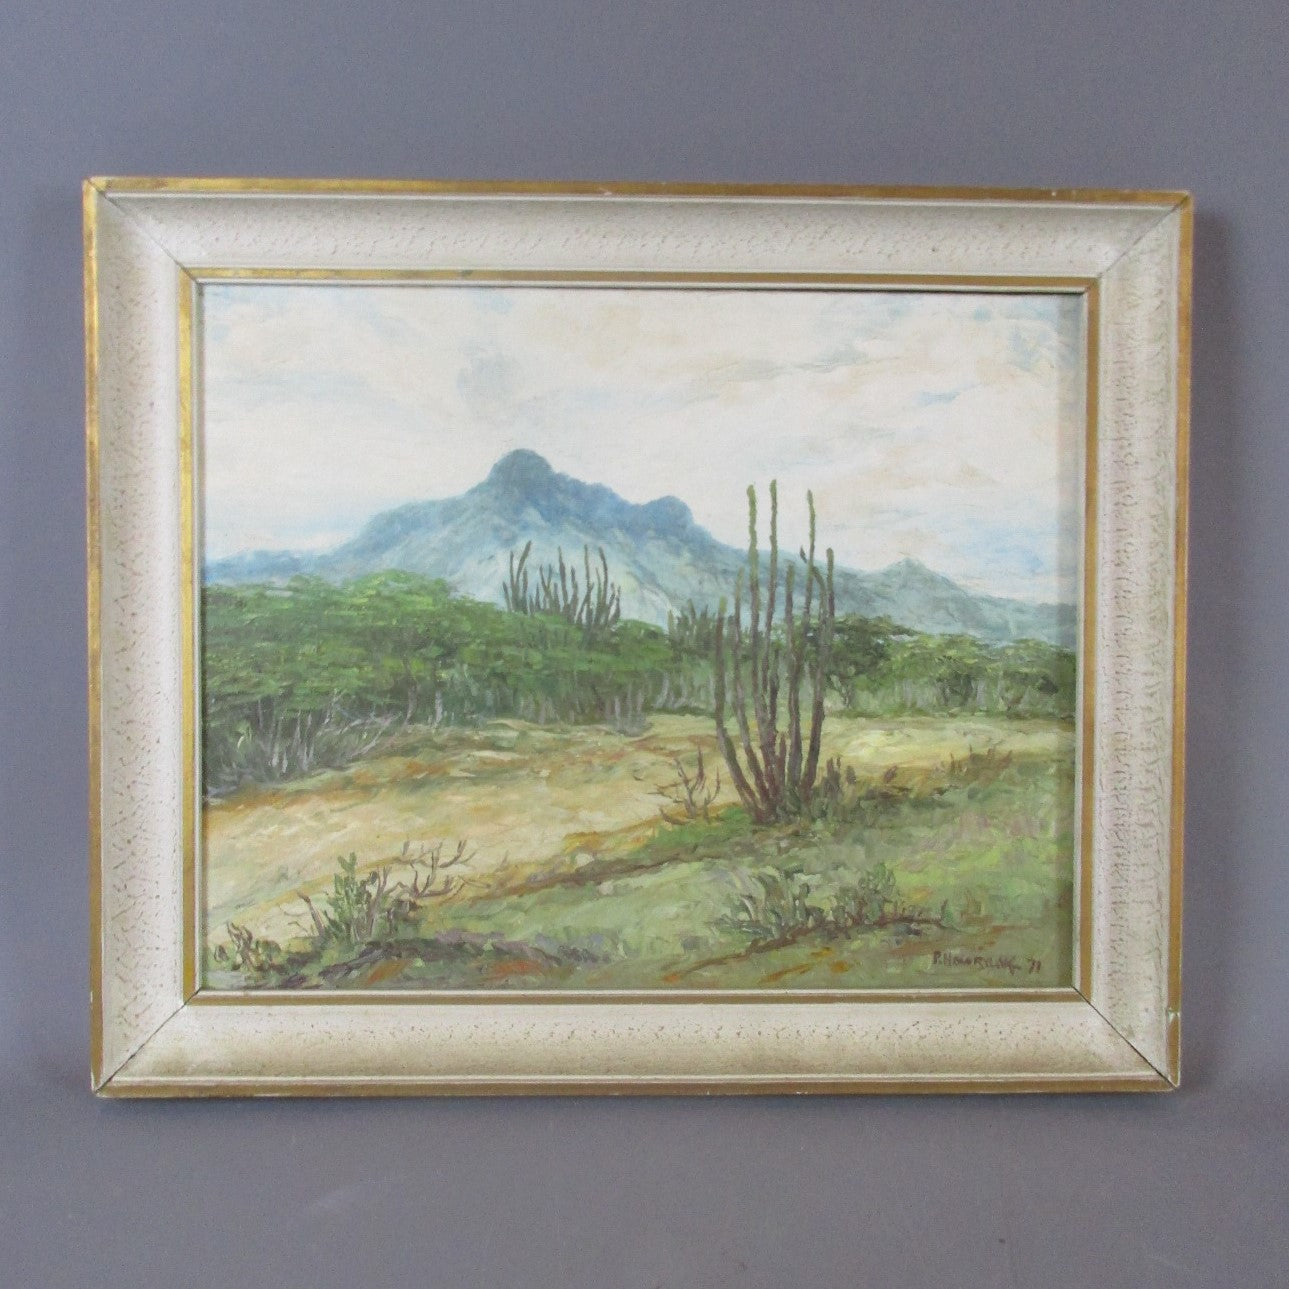 Oil on Canvas Venezuela Landscape Painting Vintage c1971